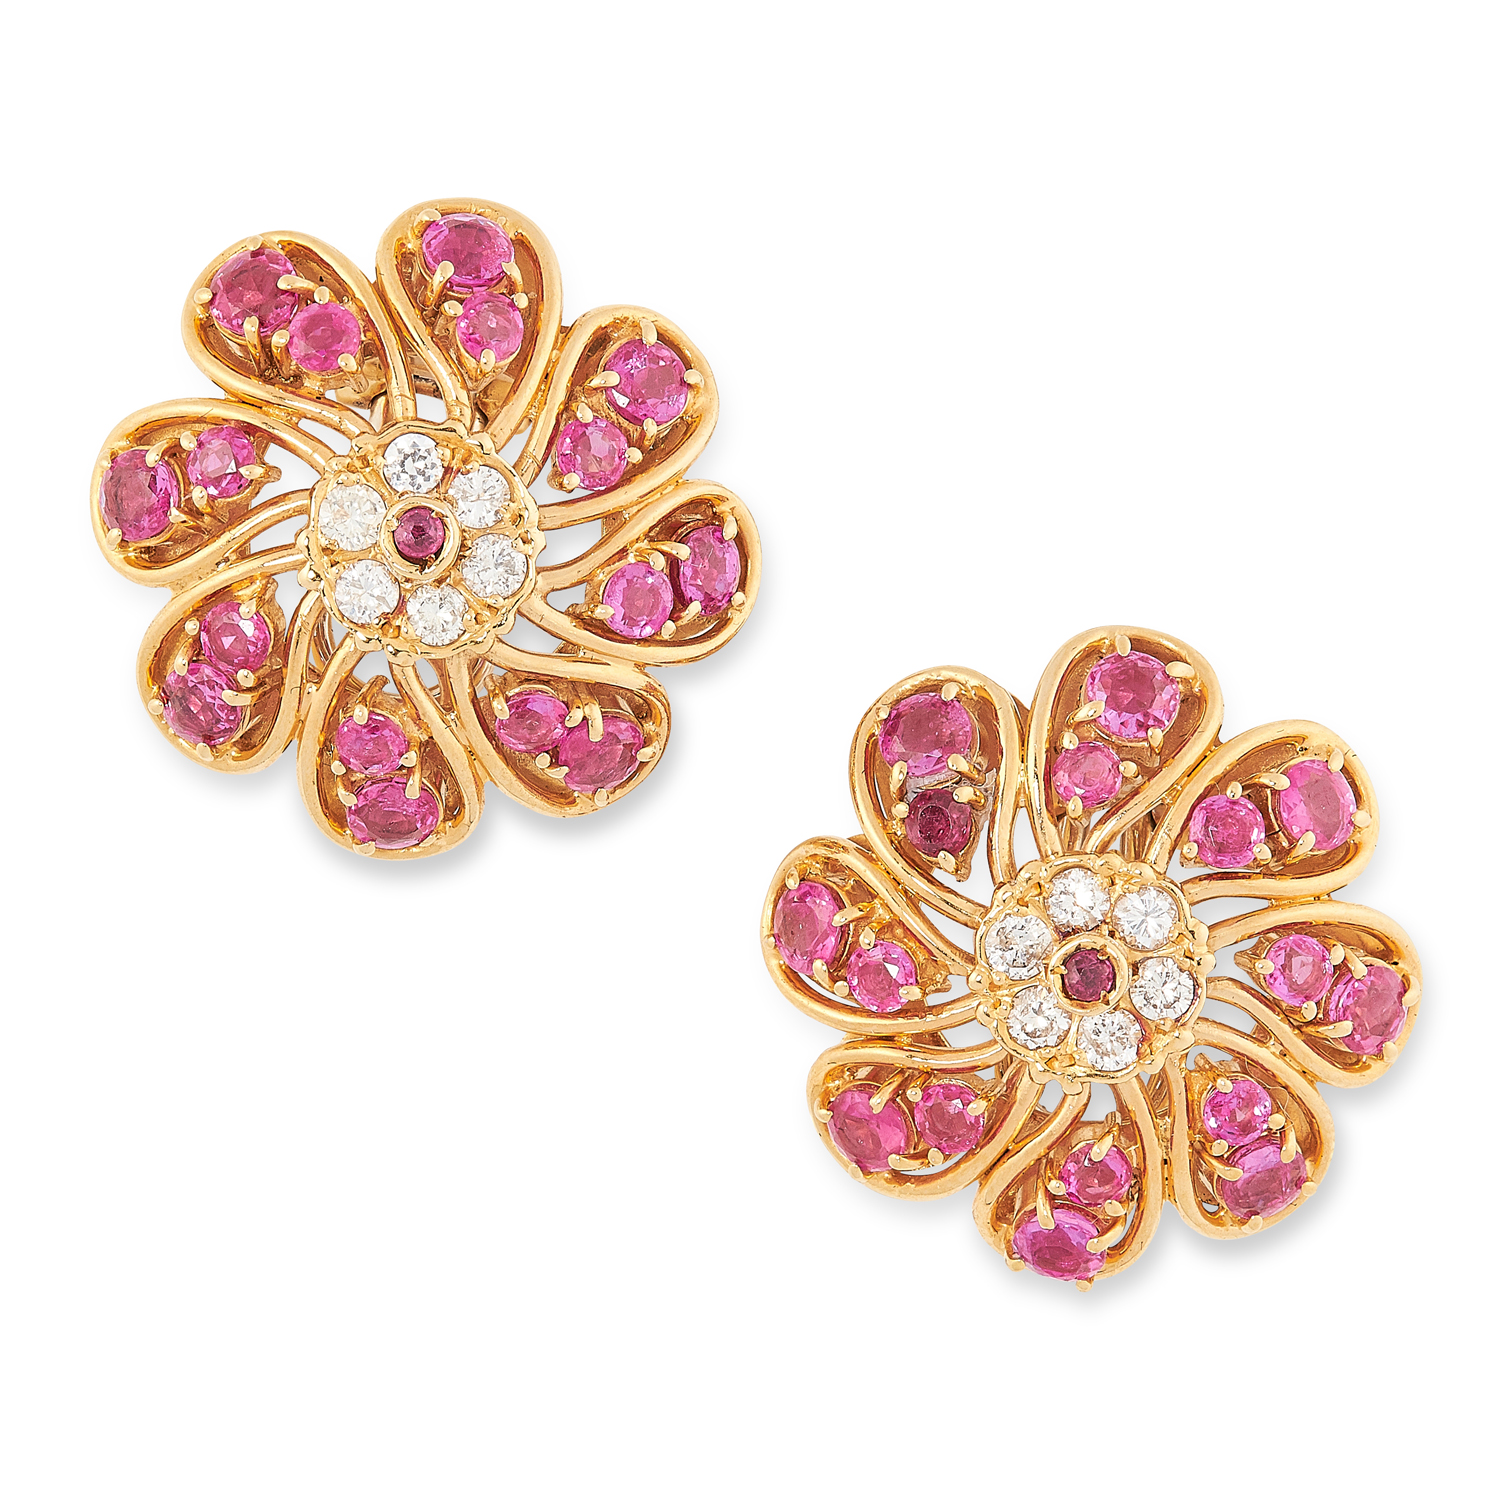 A PAIR OF RUBY AND DIAMOND CLUSTER EARRINGS set with rose cut diamonds and round brilliant cut